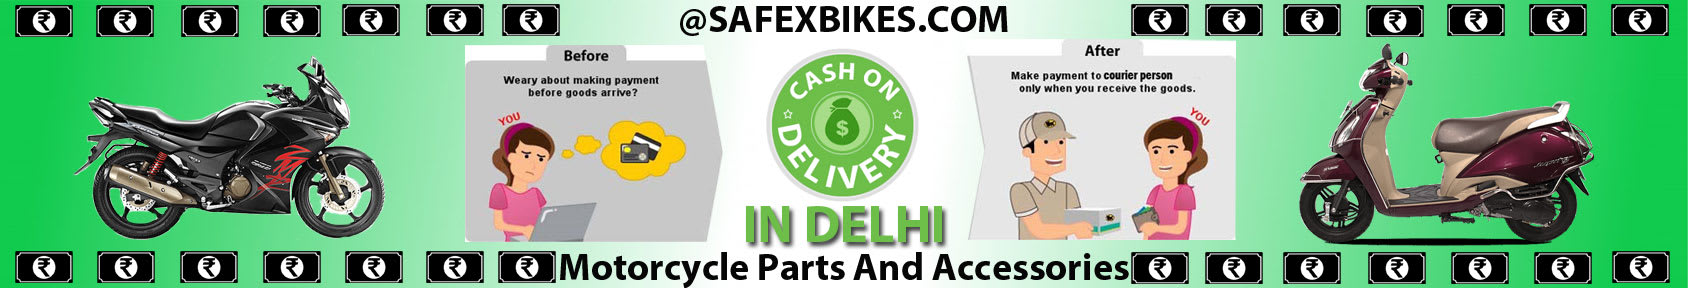 Special offers on Genuine Motorcycle Spare Parts And  		   Accessories - Cash on delivery in Delhi